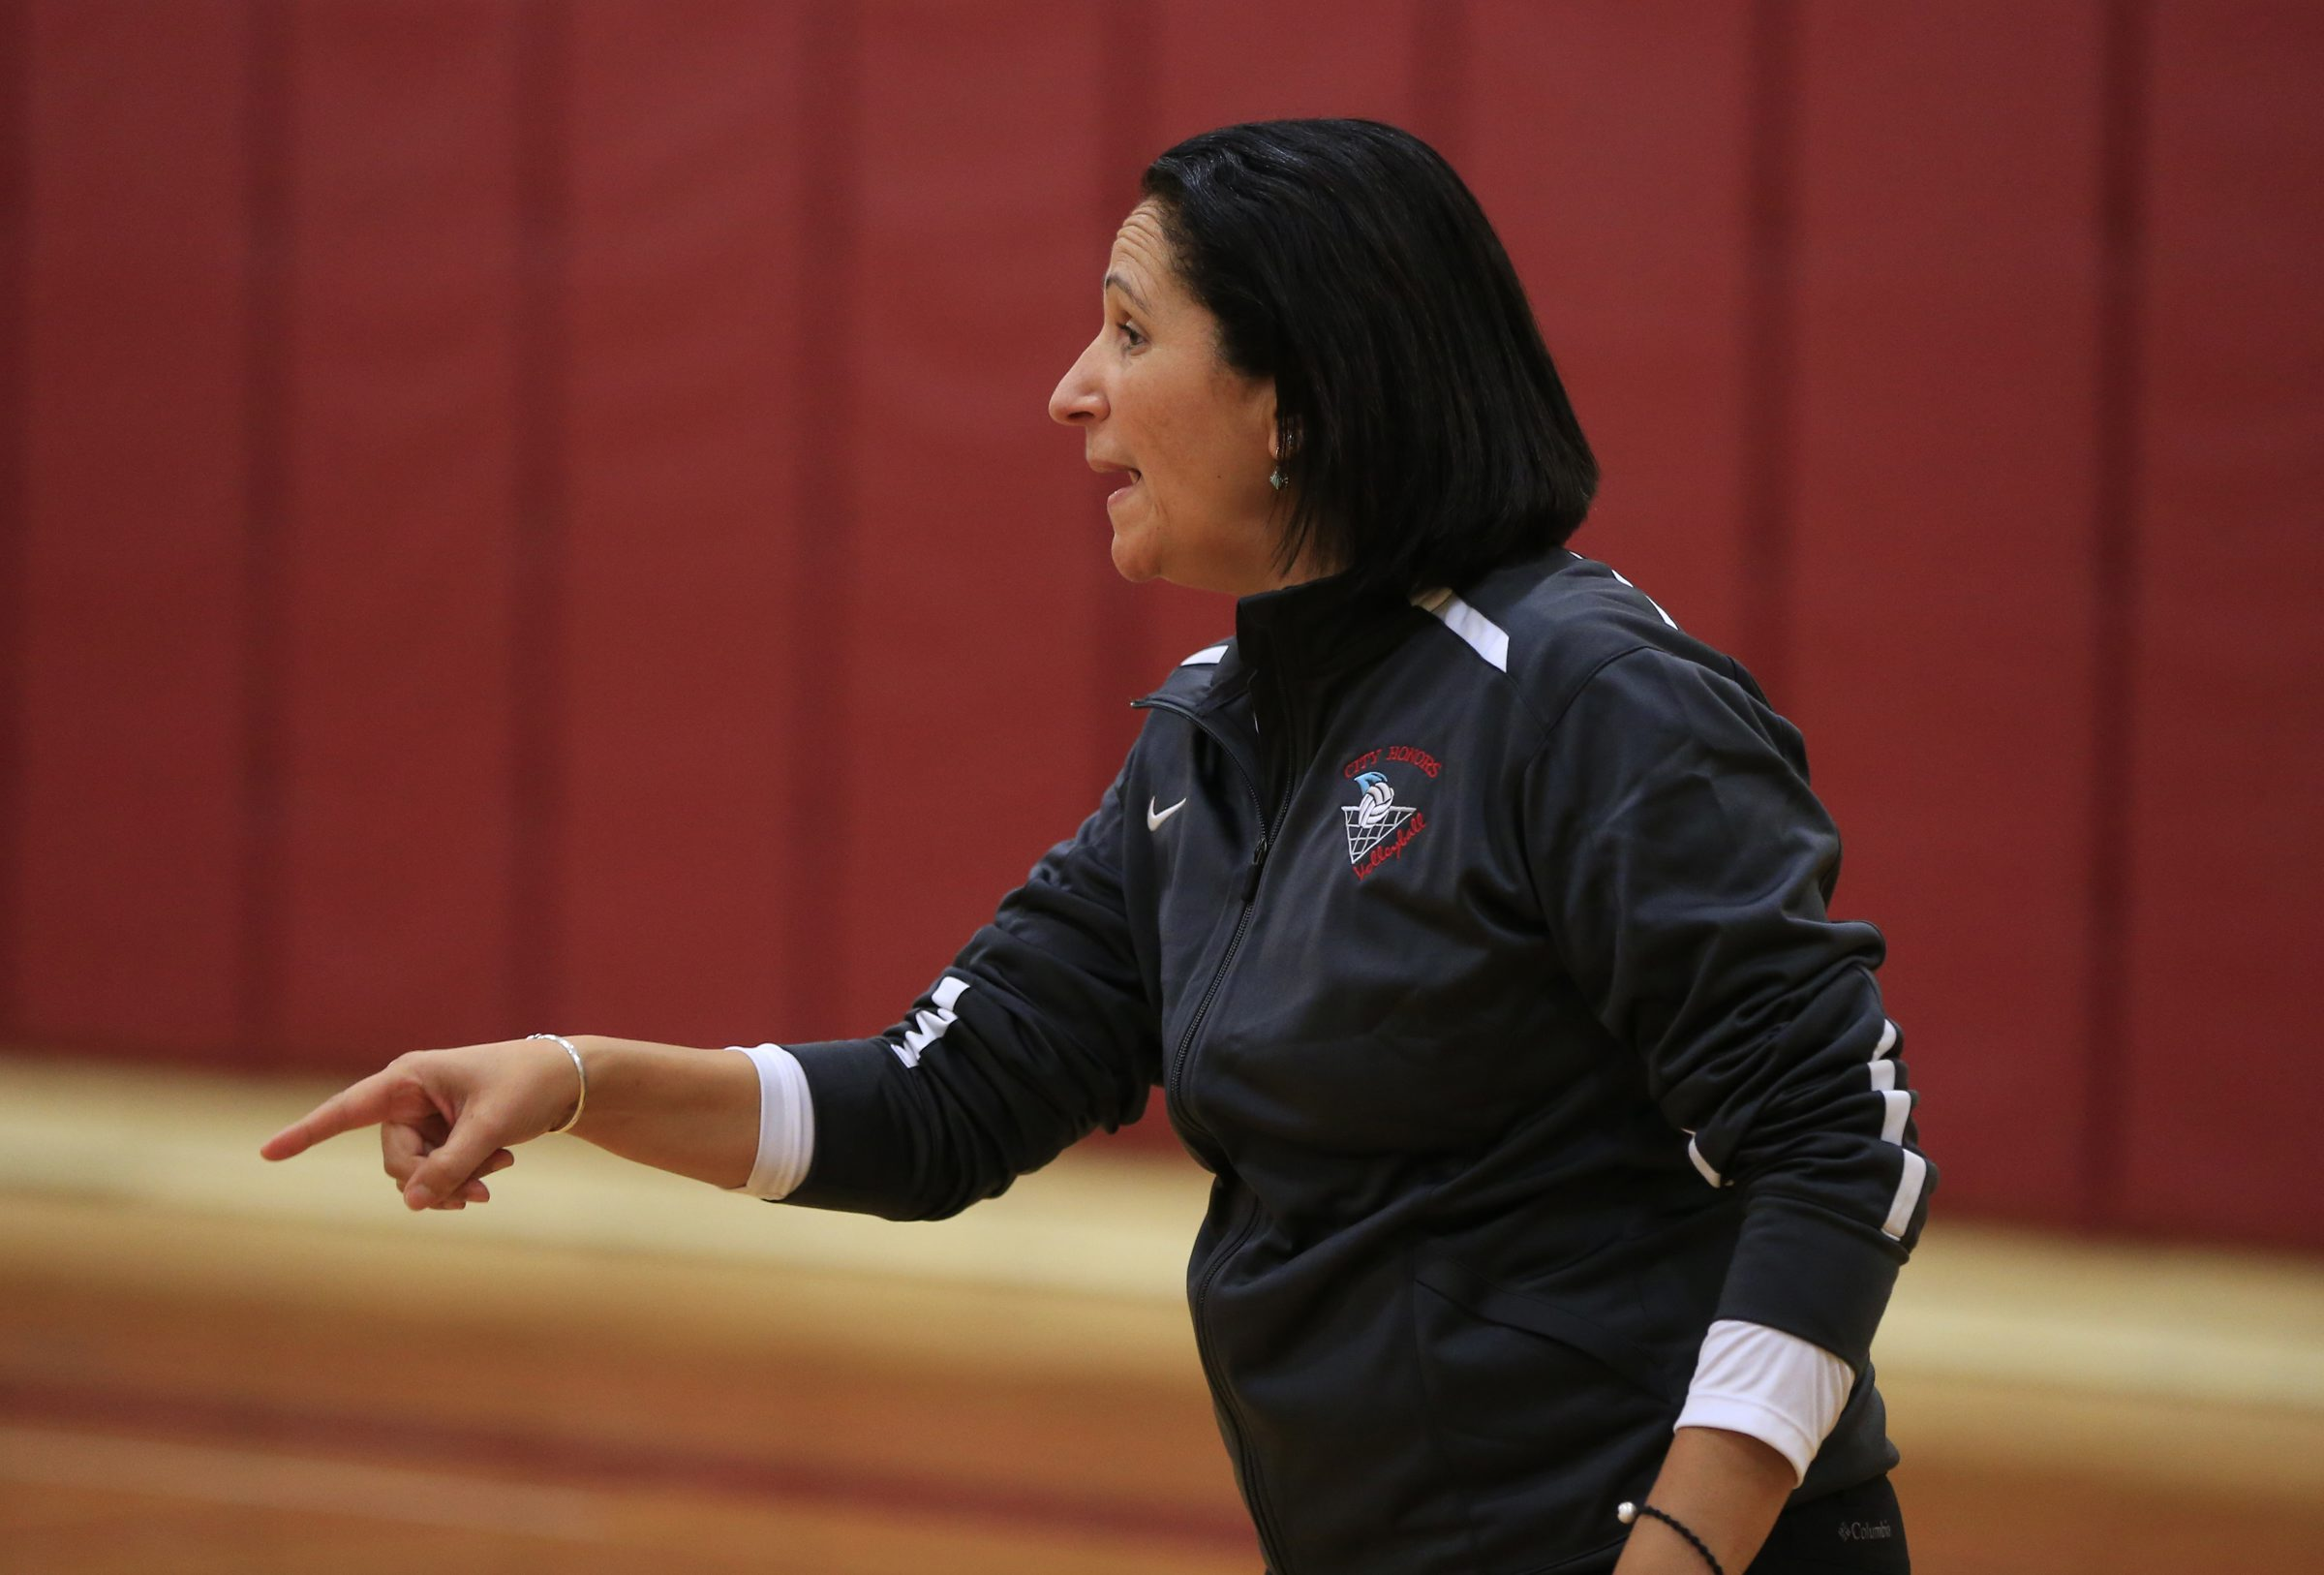 Deborah Matos has guided City Honors volleyball to a state championship and six Section VI titles during her 19 seasons as Centaurs coach. She also guided City Honors softball to a winning season and spot in the Section VI Class B-1 semifinals. (Harry Scull Jr. / Buffalo News file photo)